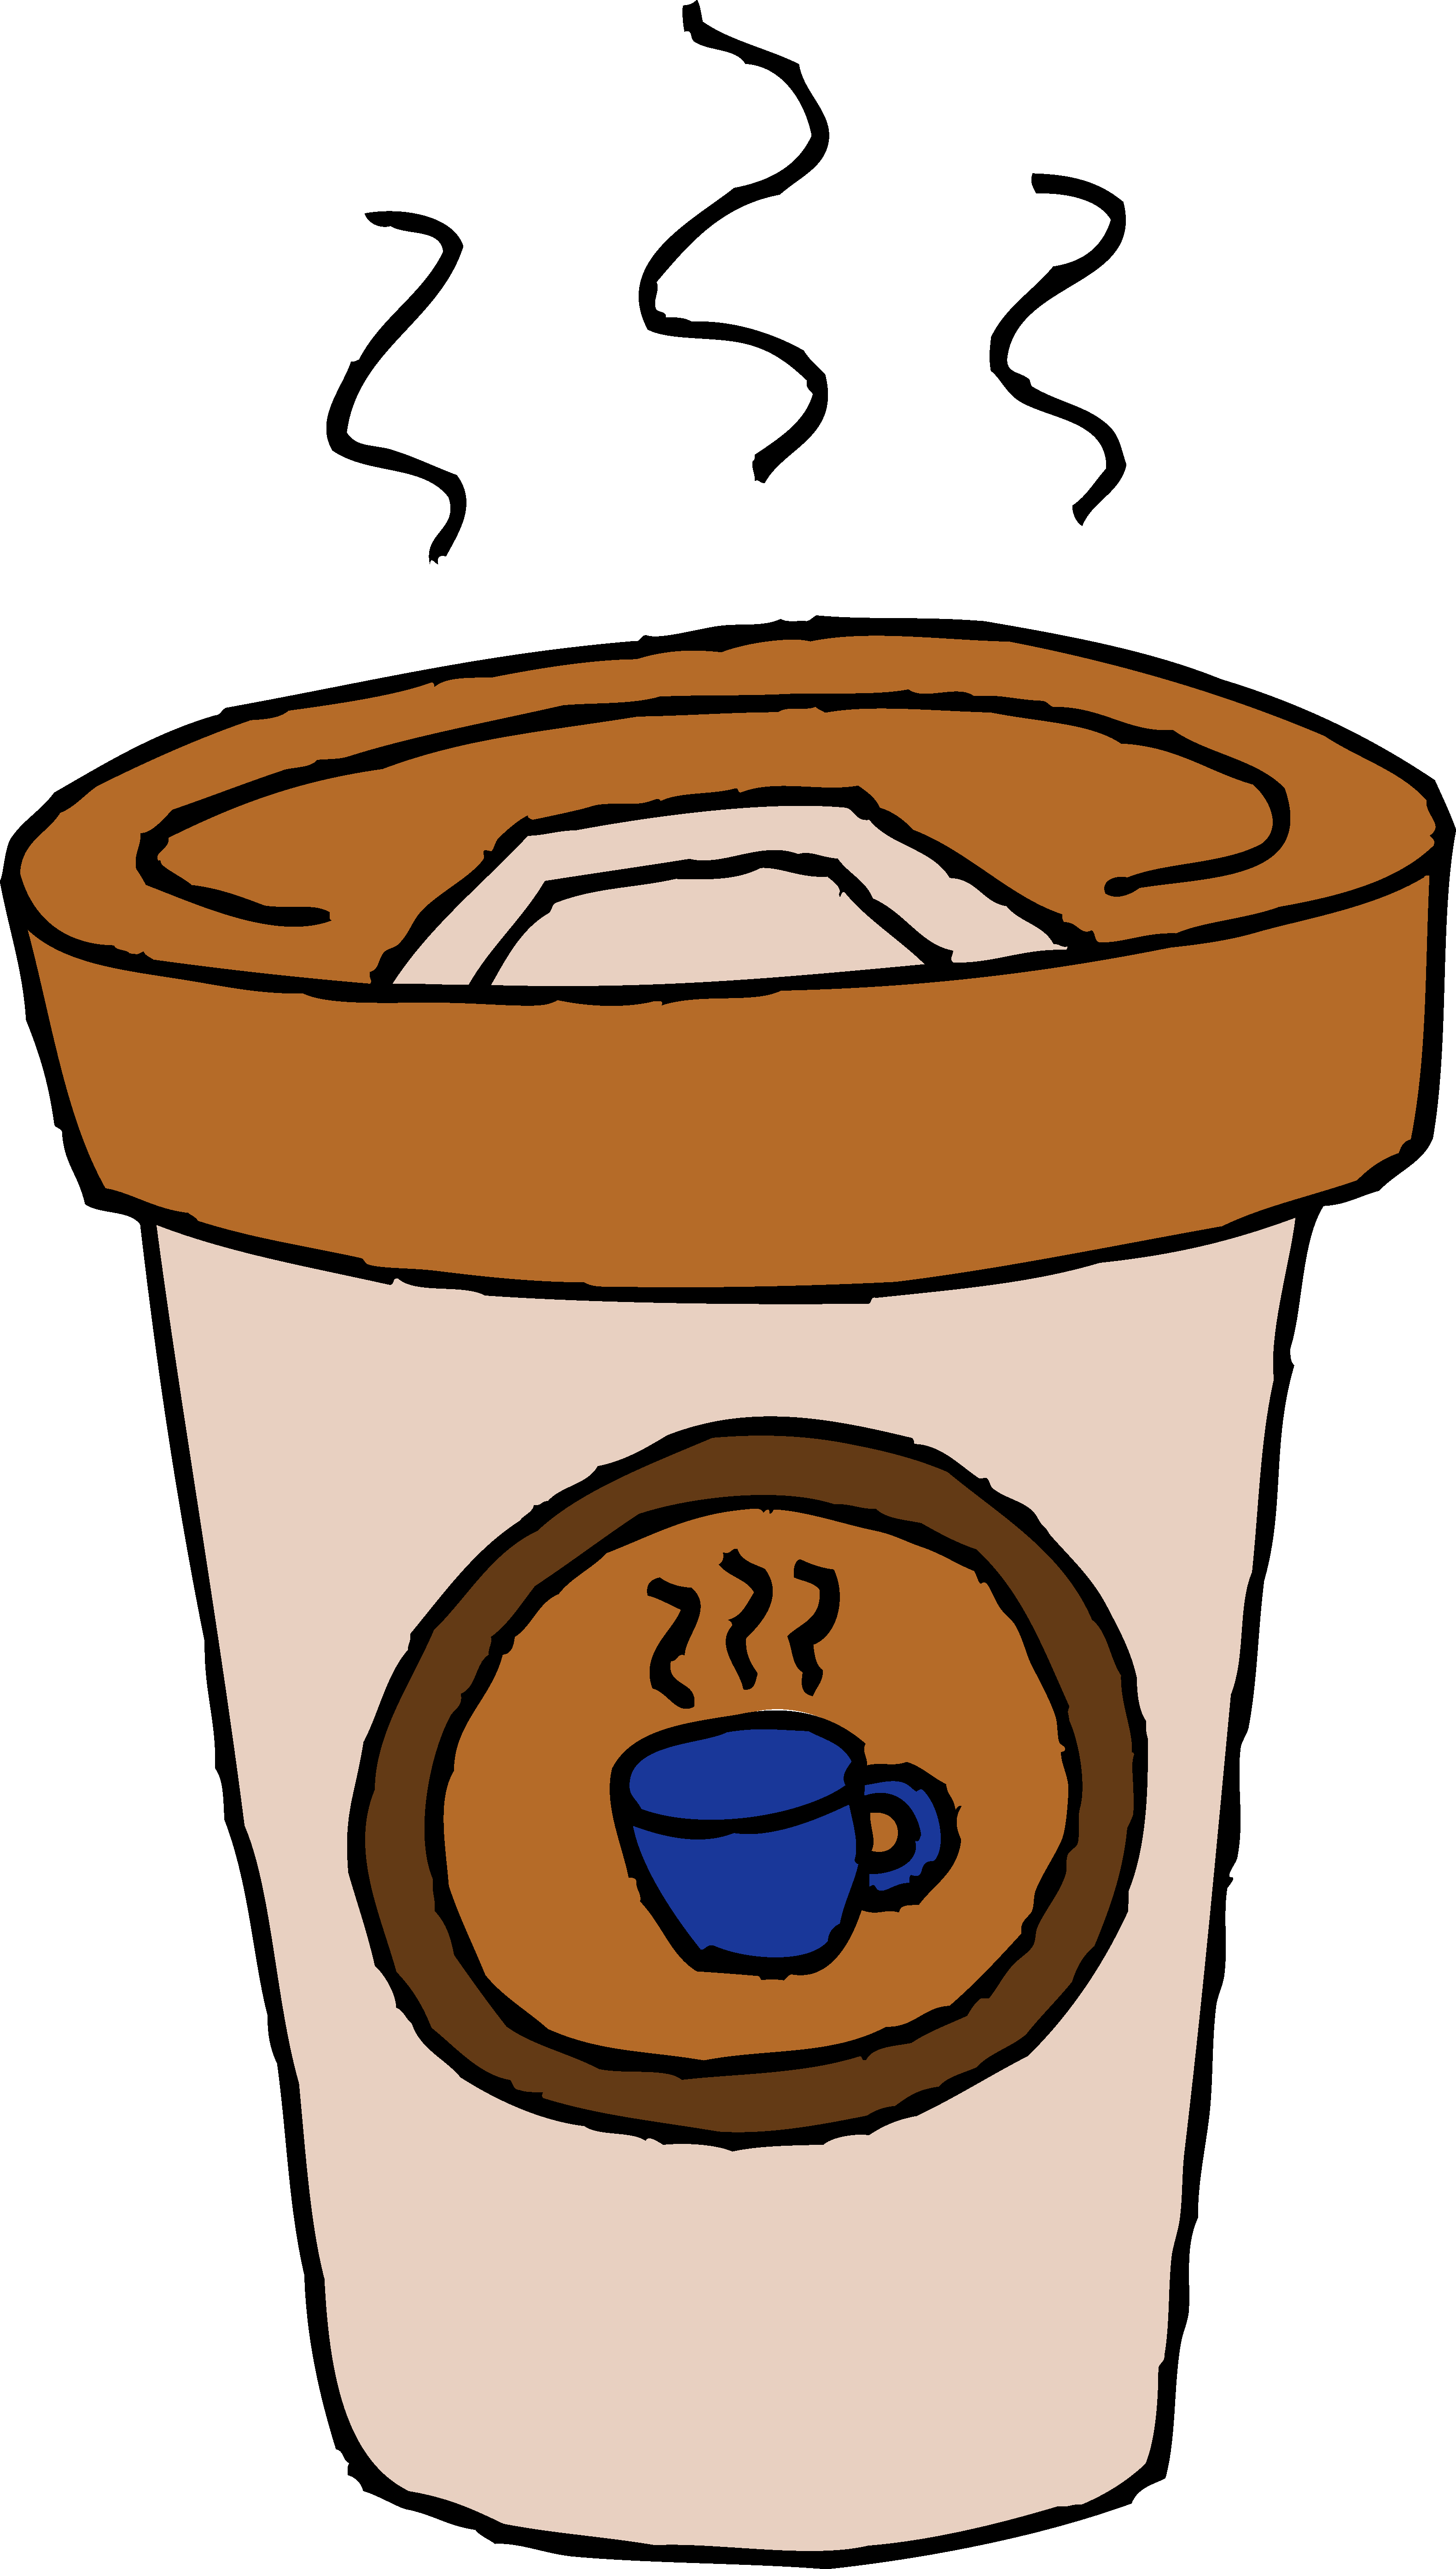 Coffee clipart latte art Coffee Cafe Animated Cliparts Image